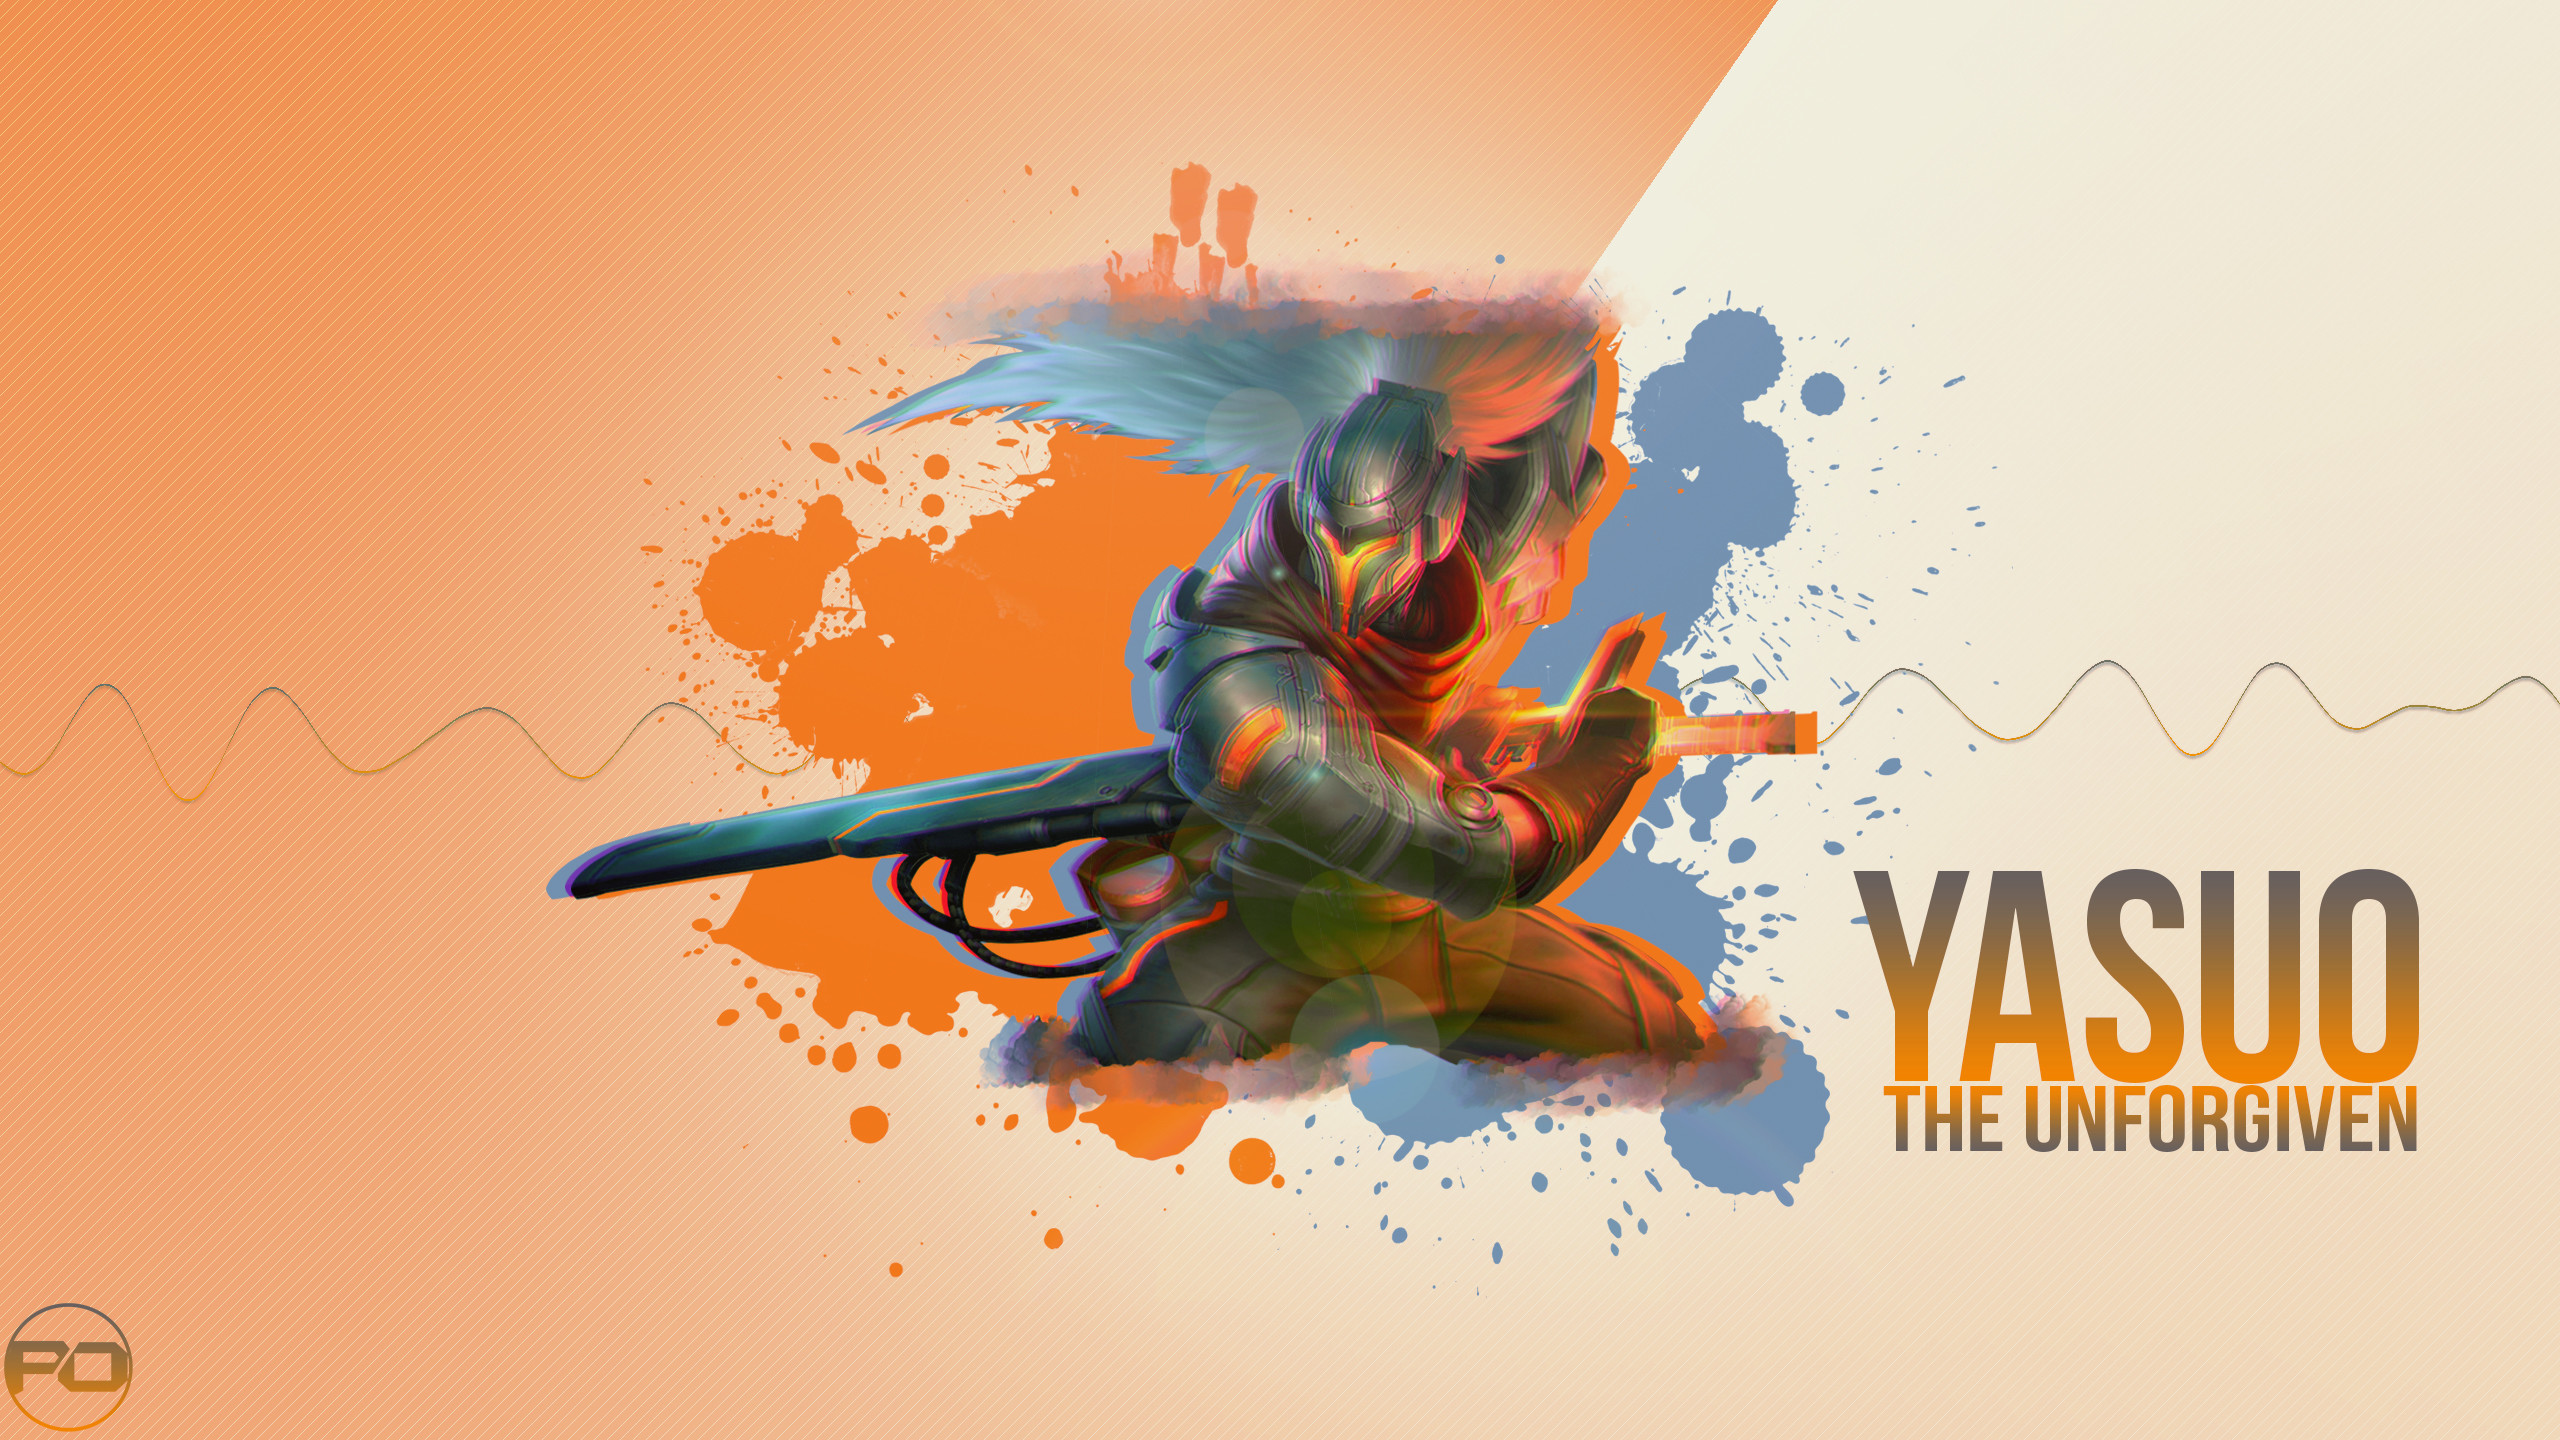 2560x1440 ... Project Yasuo wallpaper l 2560 x 1440 by PobbleD